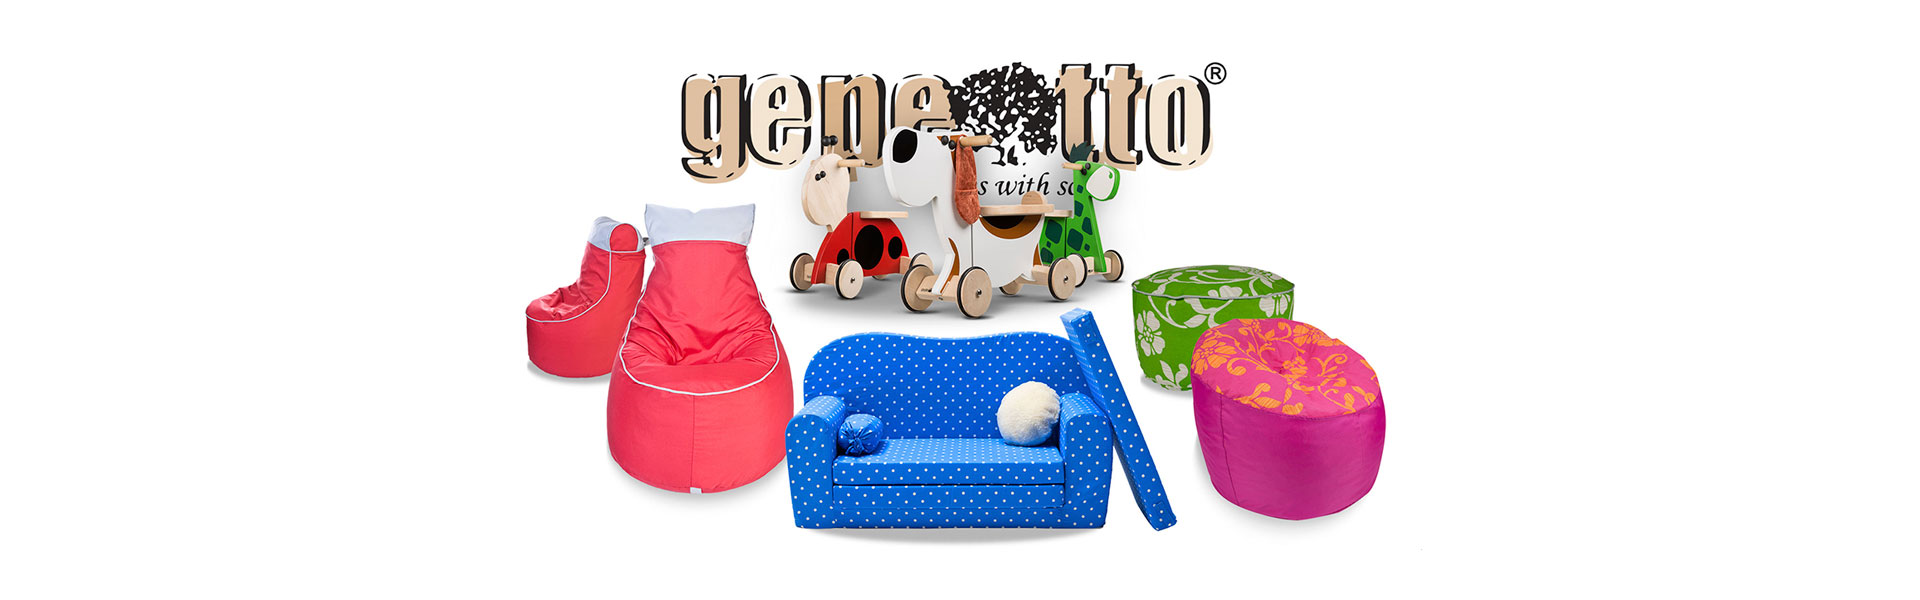 Gepetto products